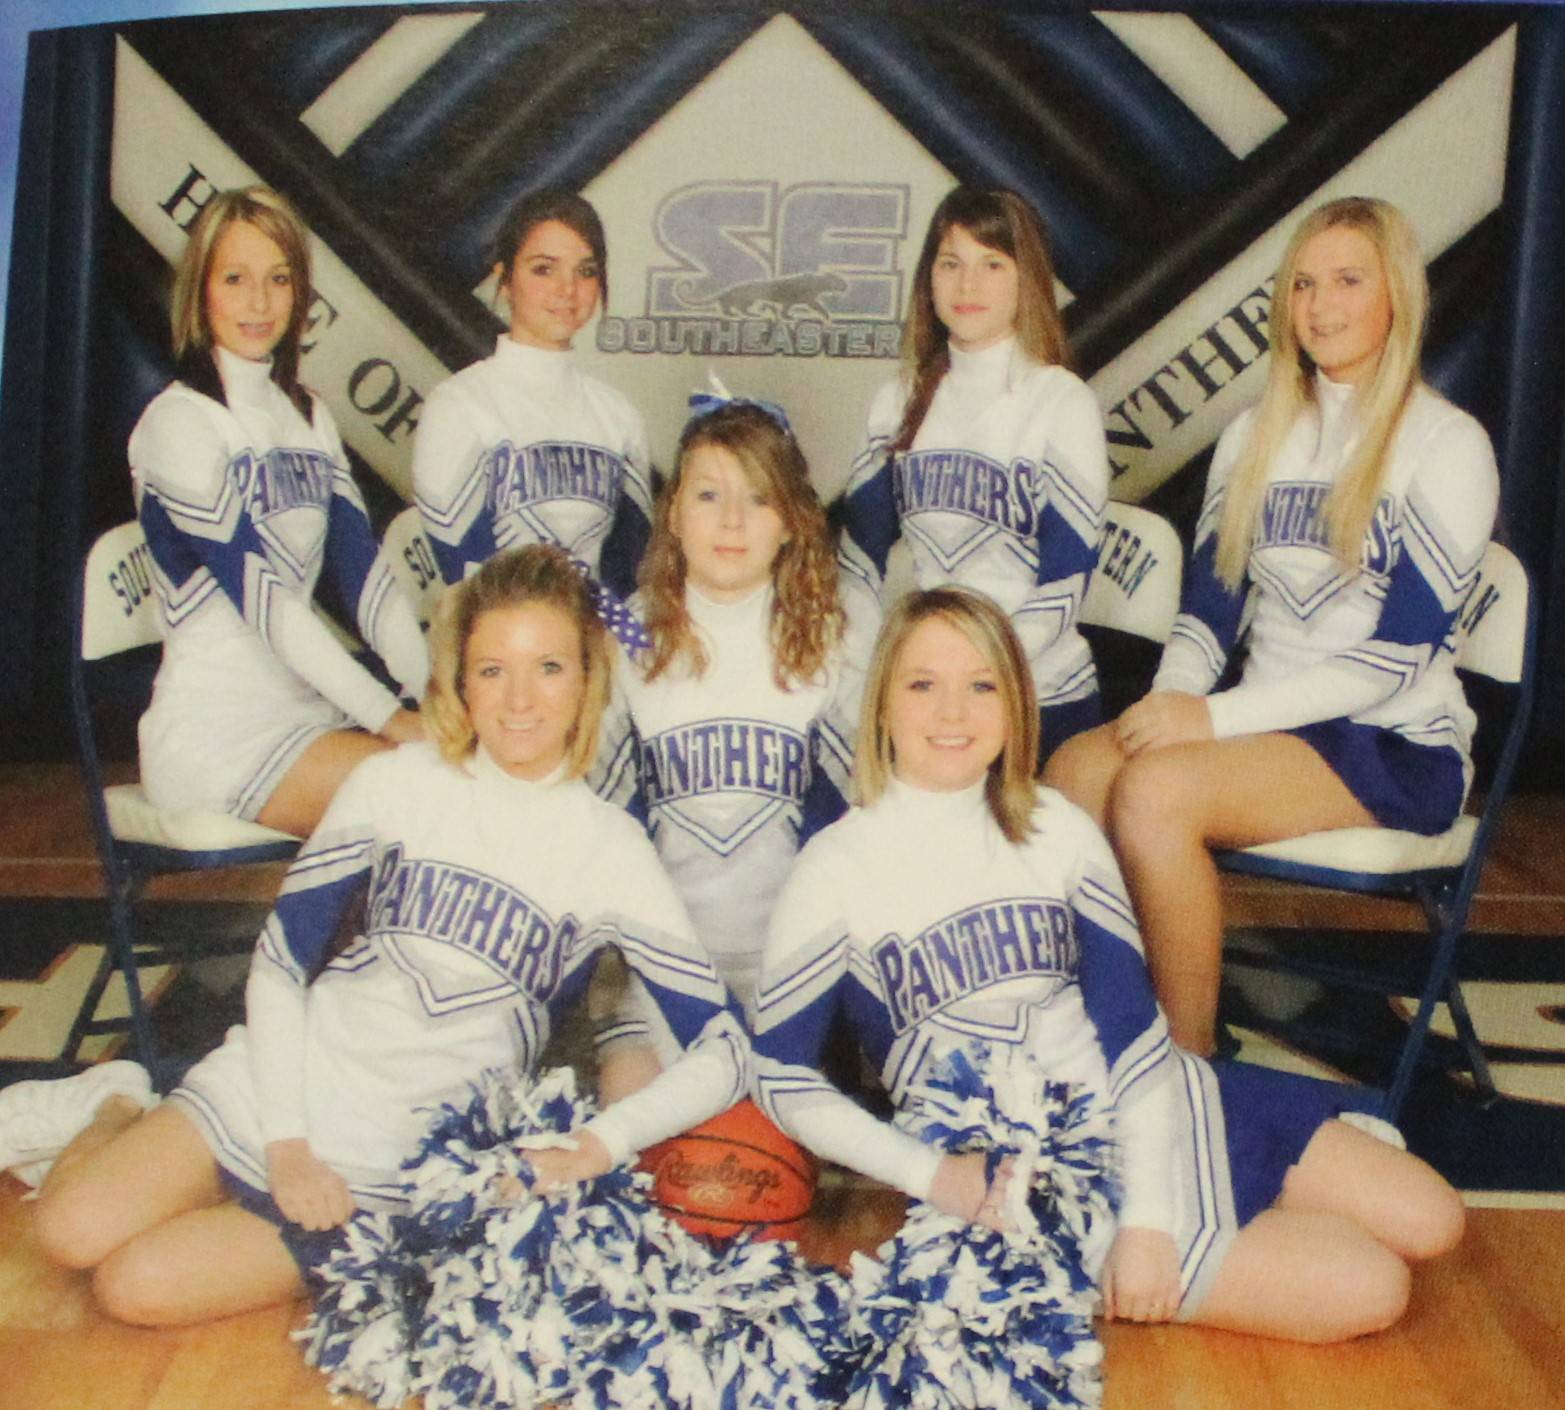 2009 Jv Cheerleaders